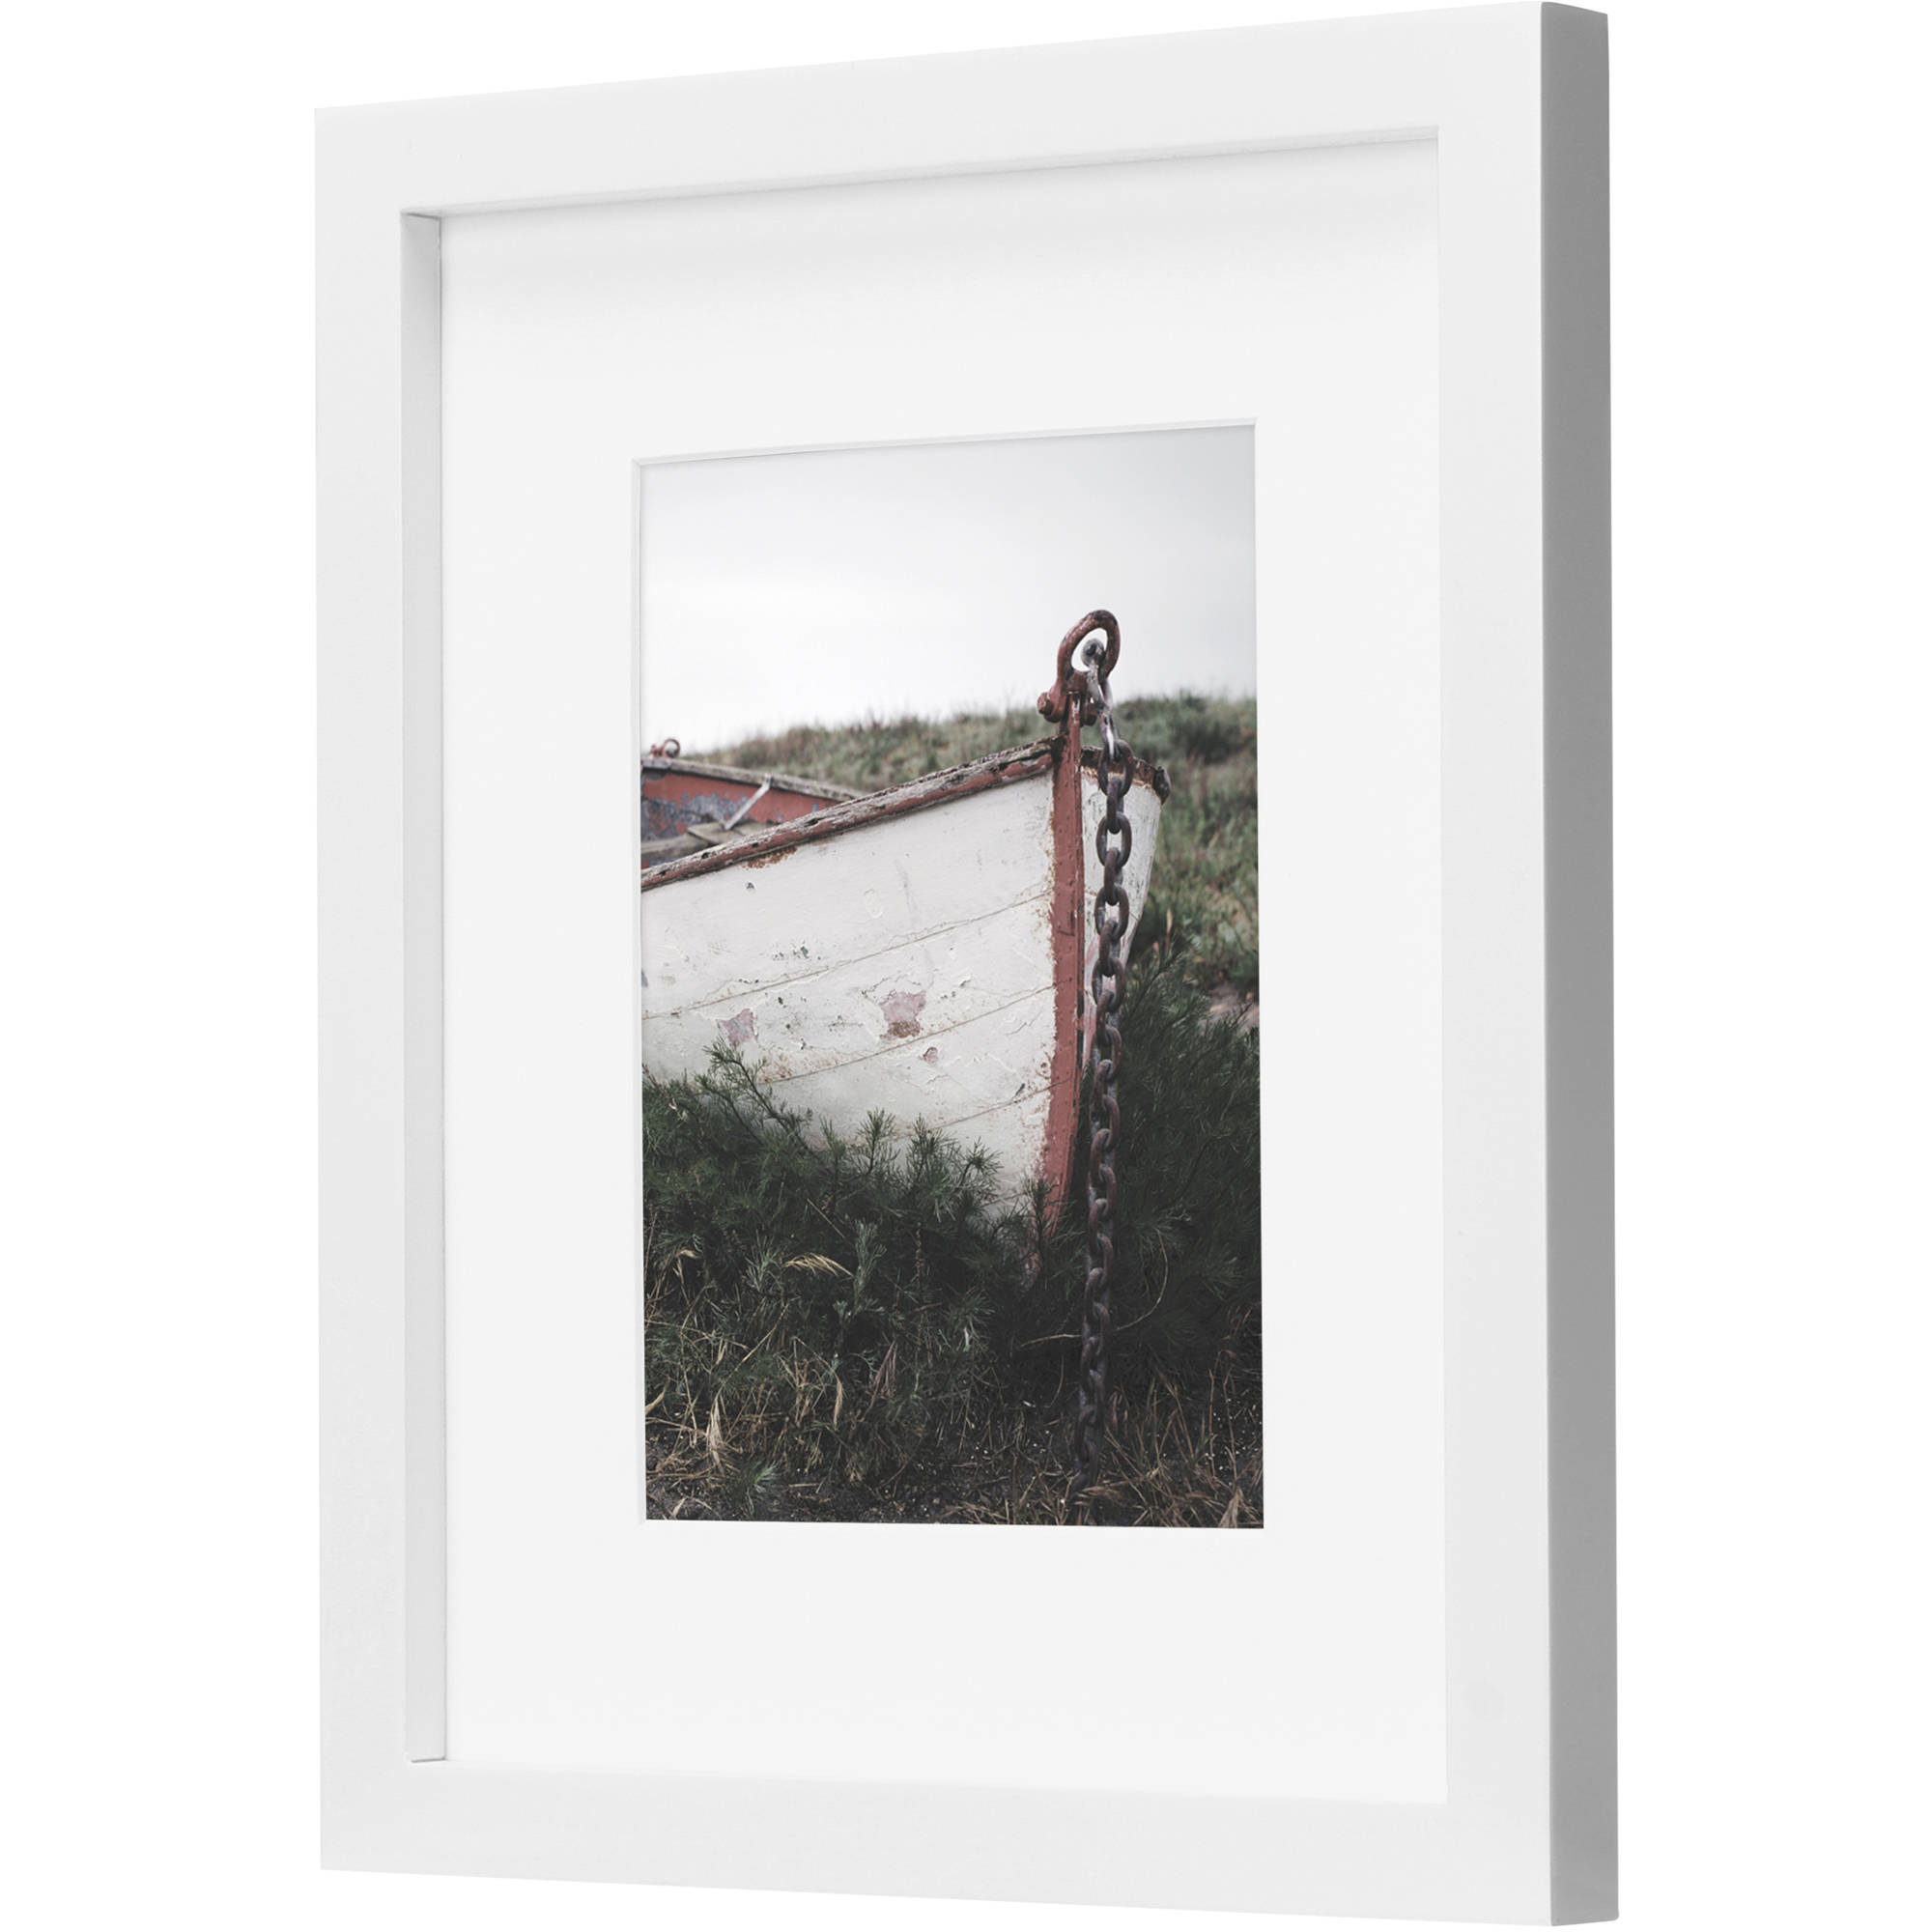 Better homes and gardens gallery 8 x 10 2032 cm x 254 cm enhance your space with the better homes and gardens gallery picture frame set of two these crisp frames are ideal for displaying everything from family jeuxipadfo Choice Image